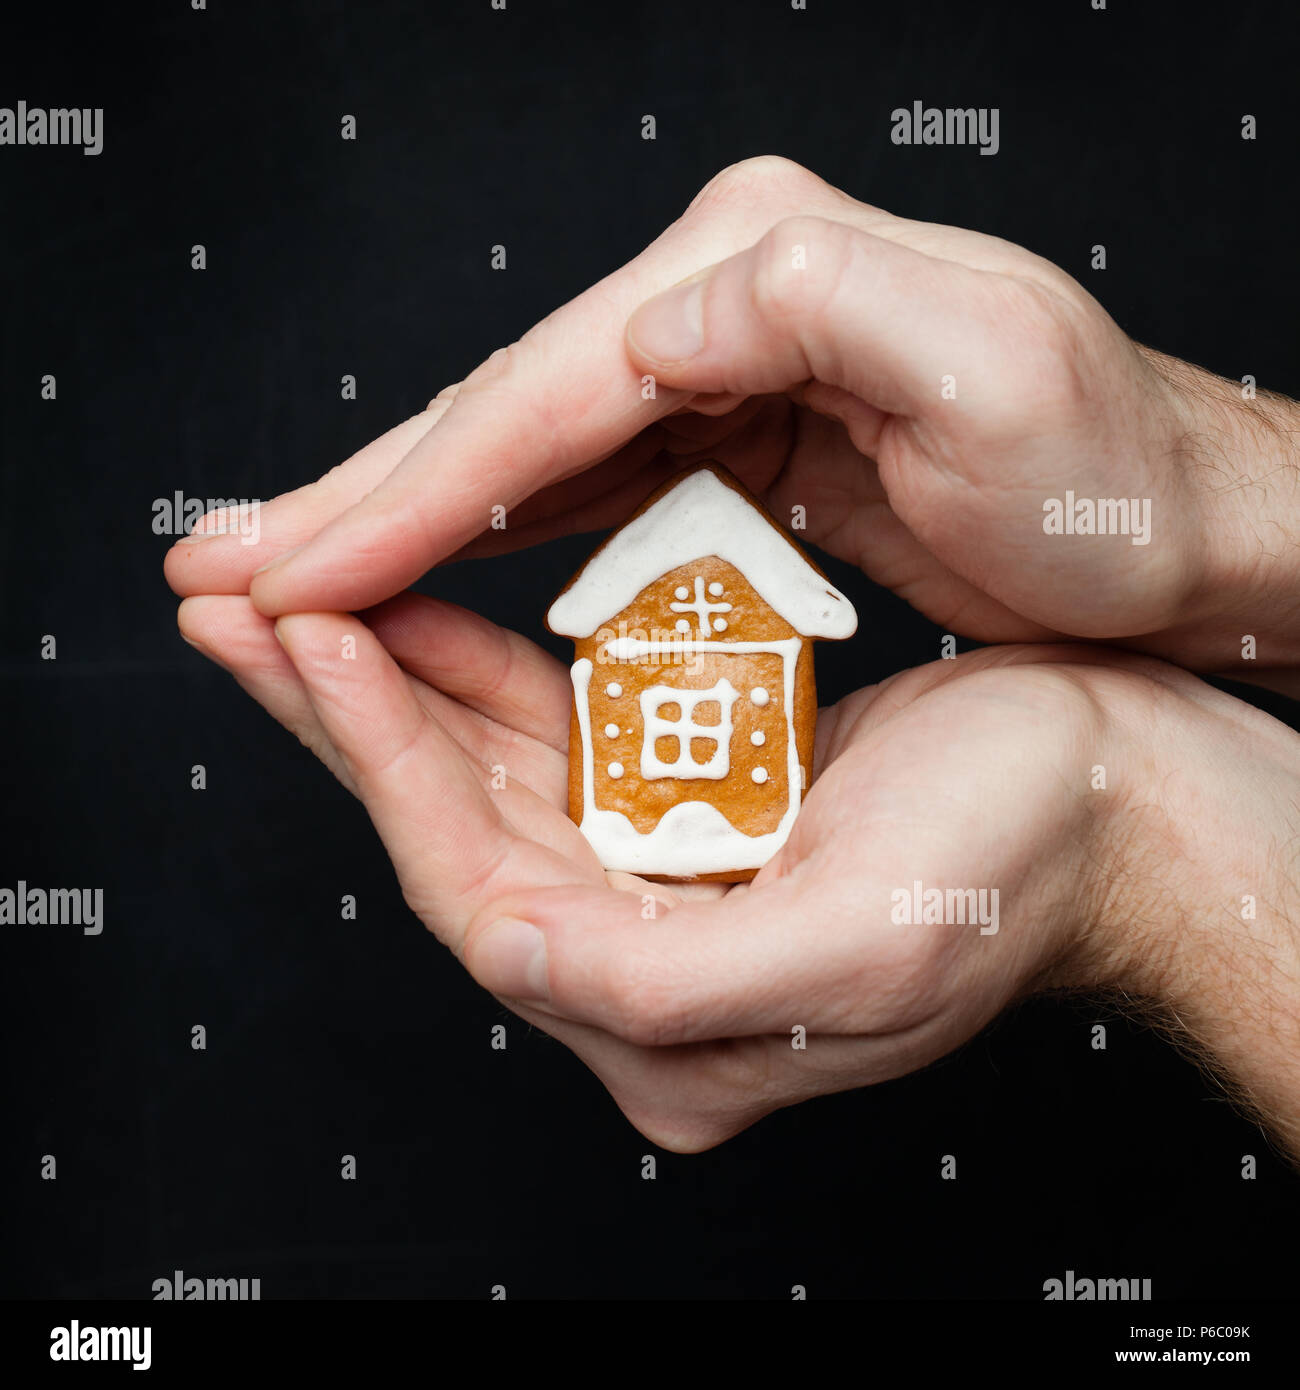 Real estate insurance, protection and property for sale concept - Stock Image